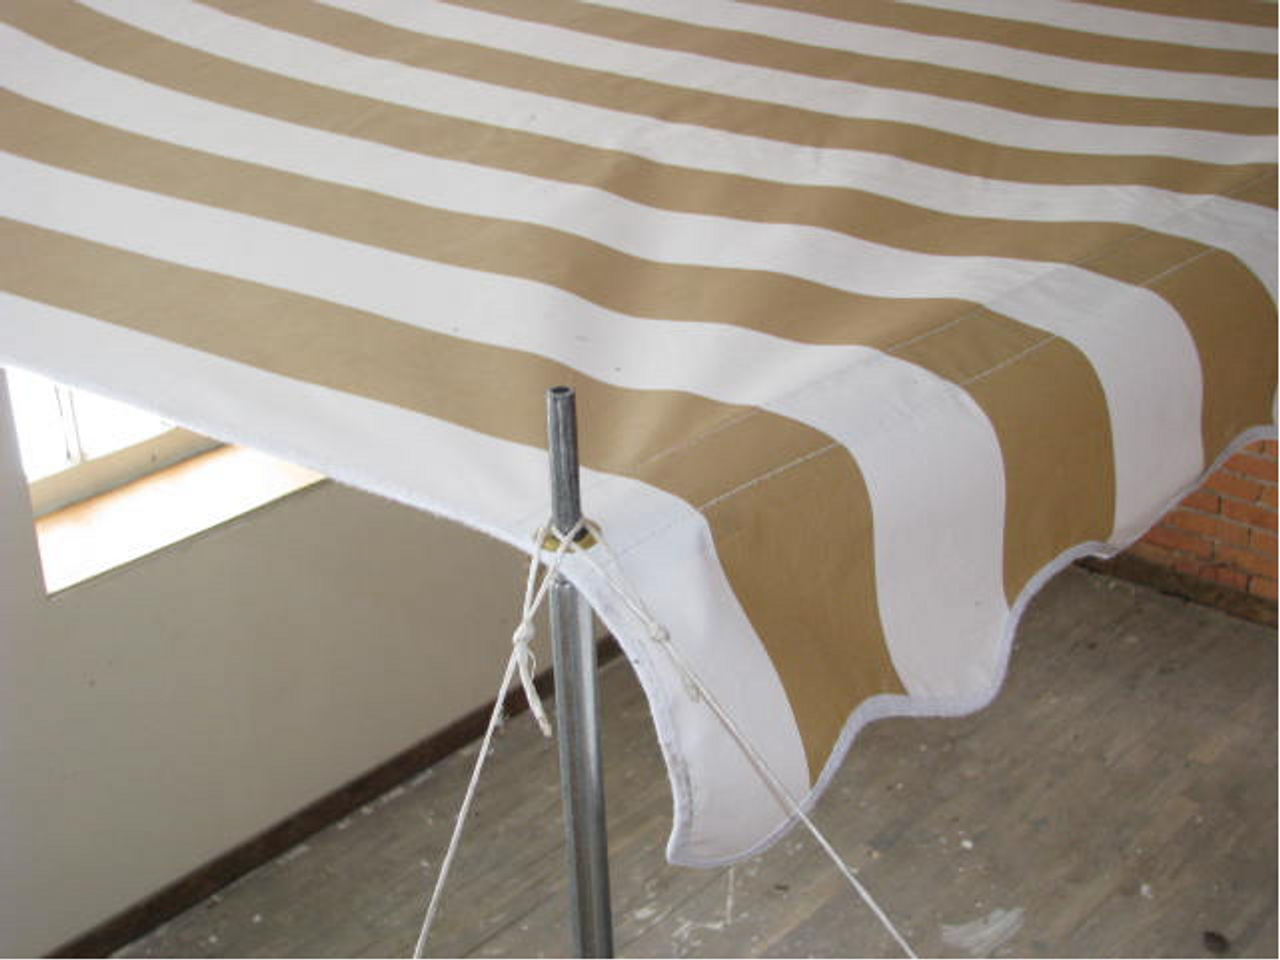 10' Rope and Pole Awning Gold and White (01-5001) ZOOMED VIEW